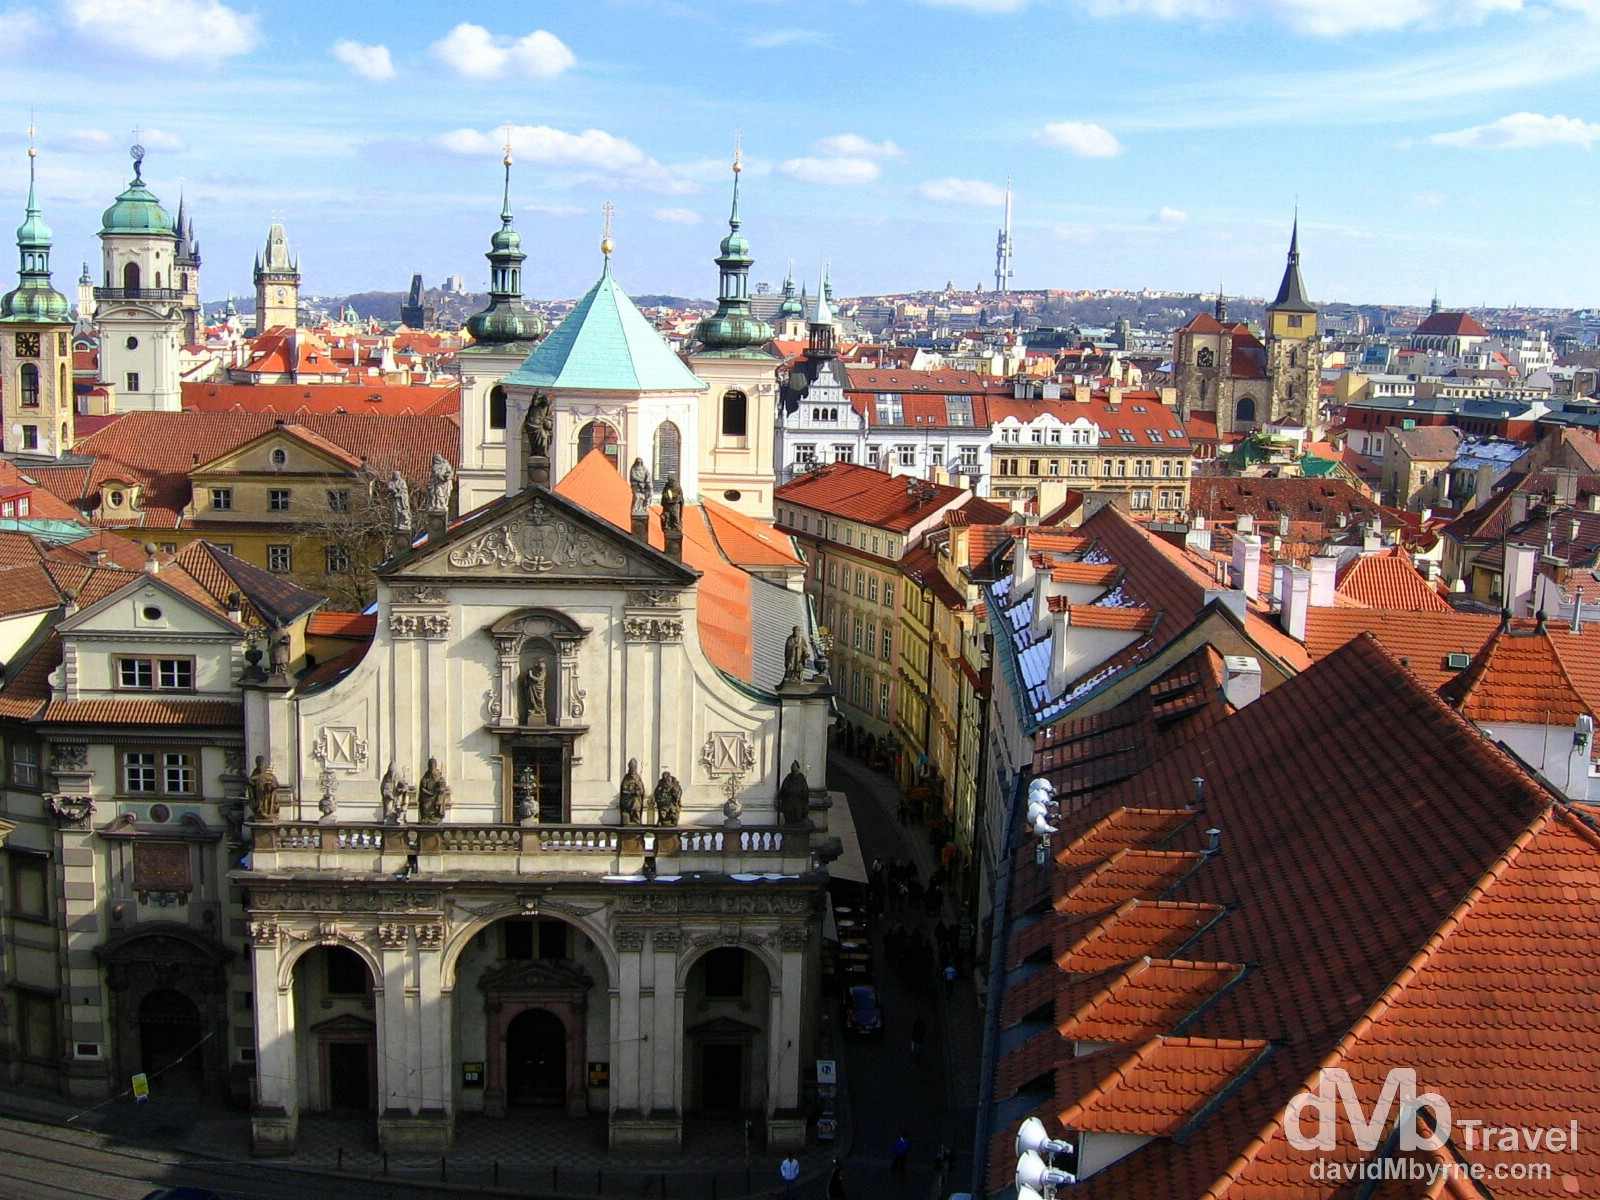 Rooftops of the Old Town of Prague as seen from the Old Town Tower of Charles Bridge, Prague, Czech Republic.